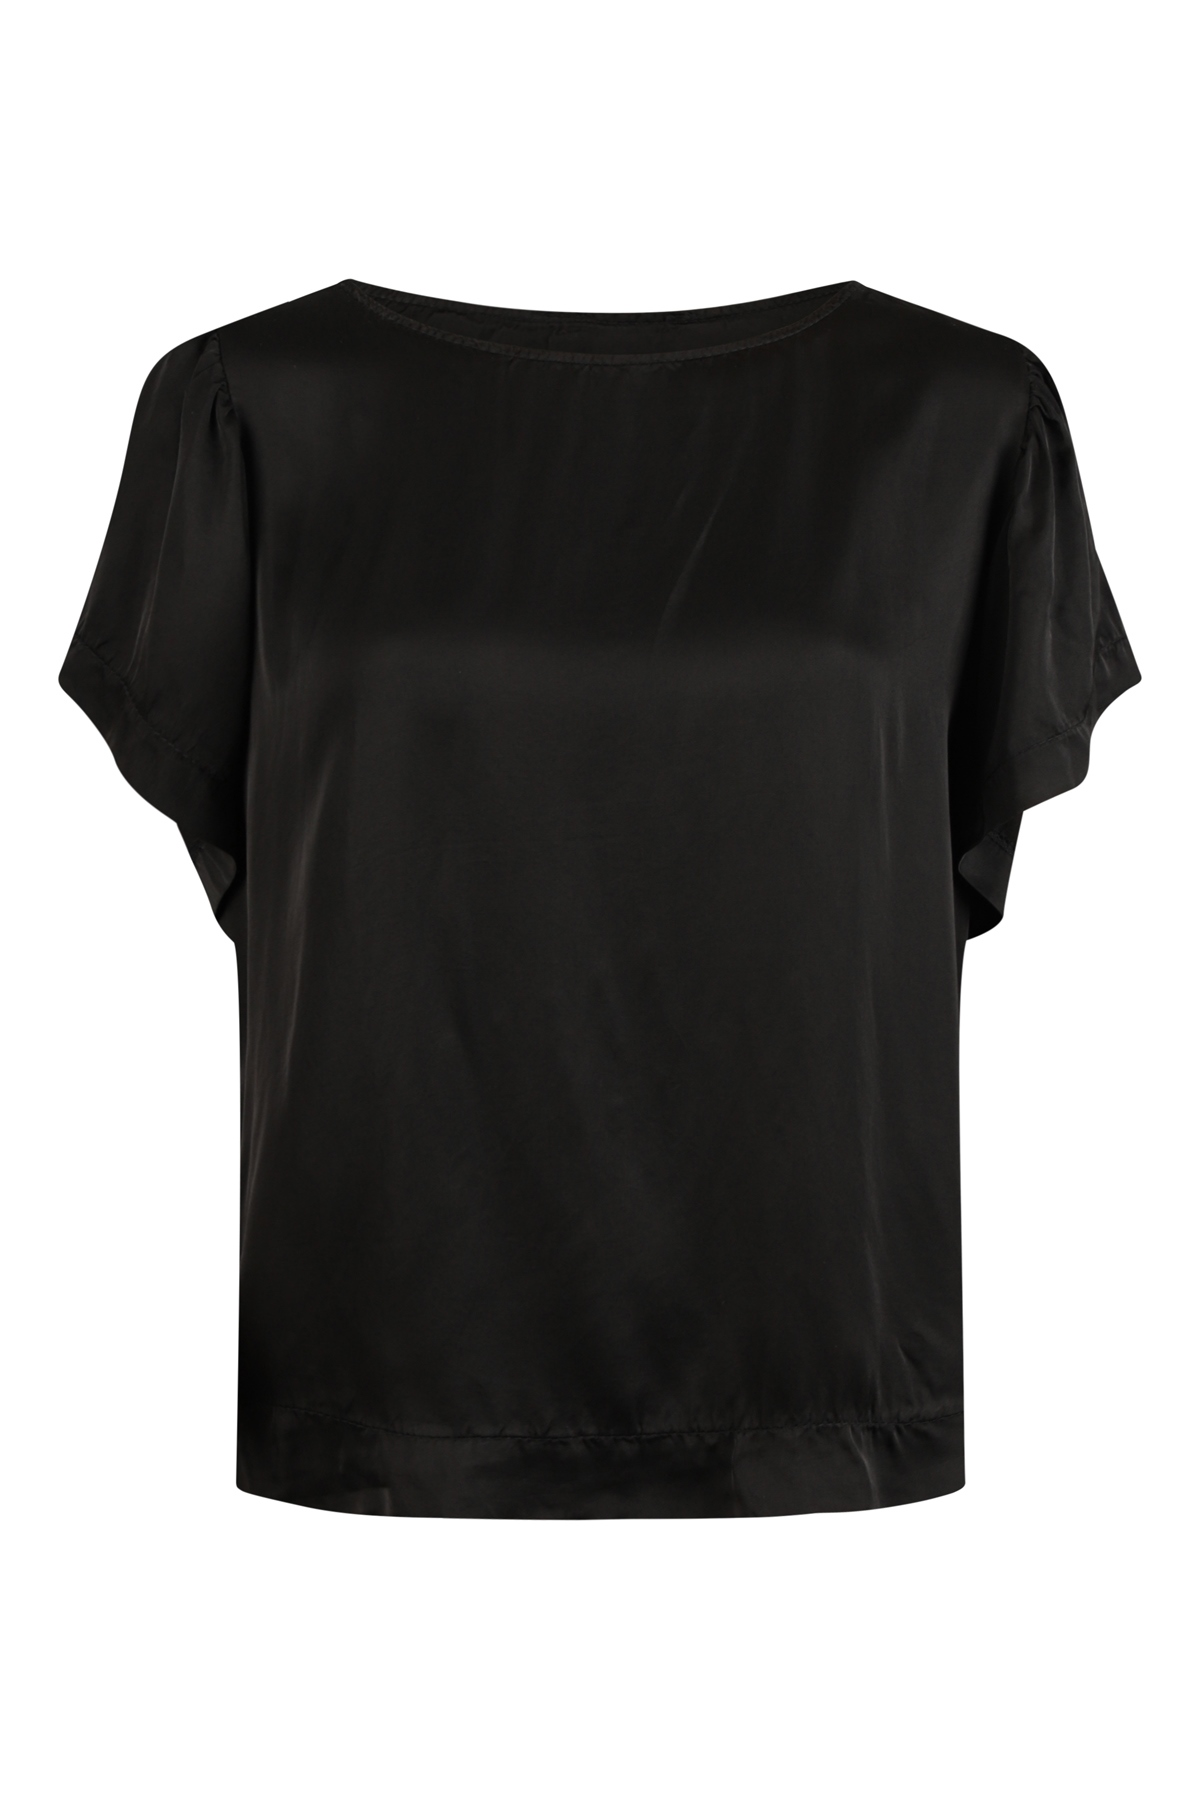 Le Ballon Shirt / Top Zwart 18506